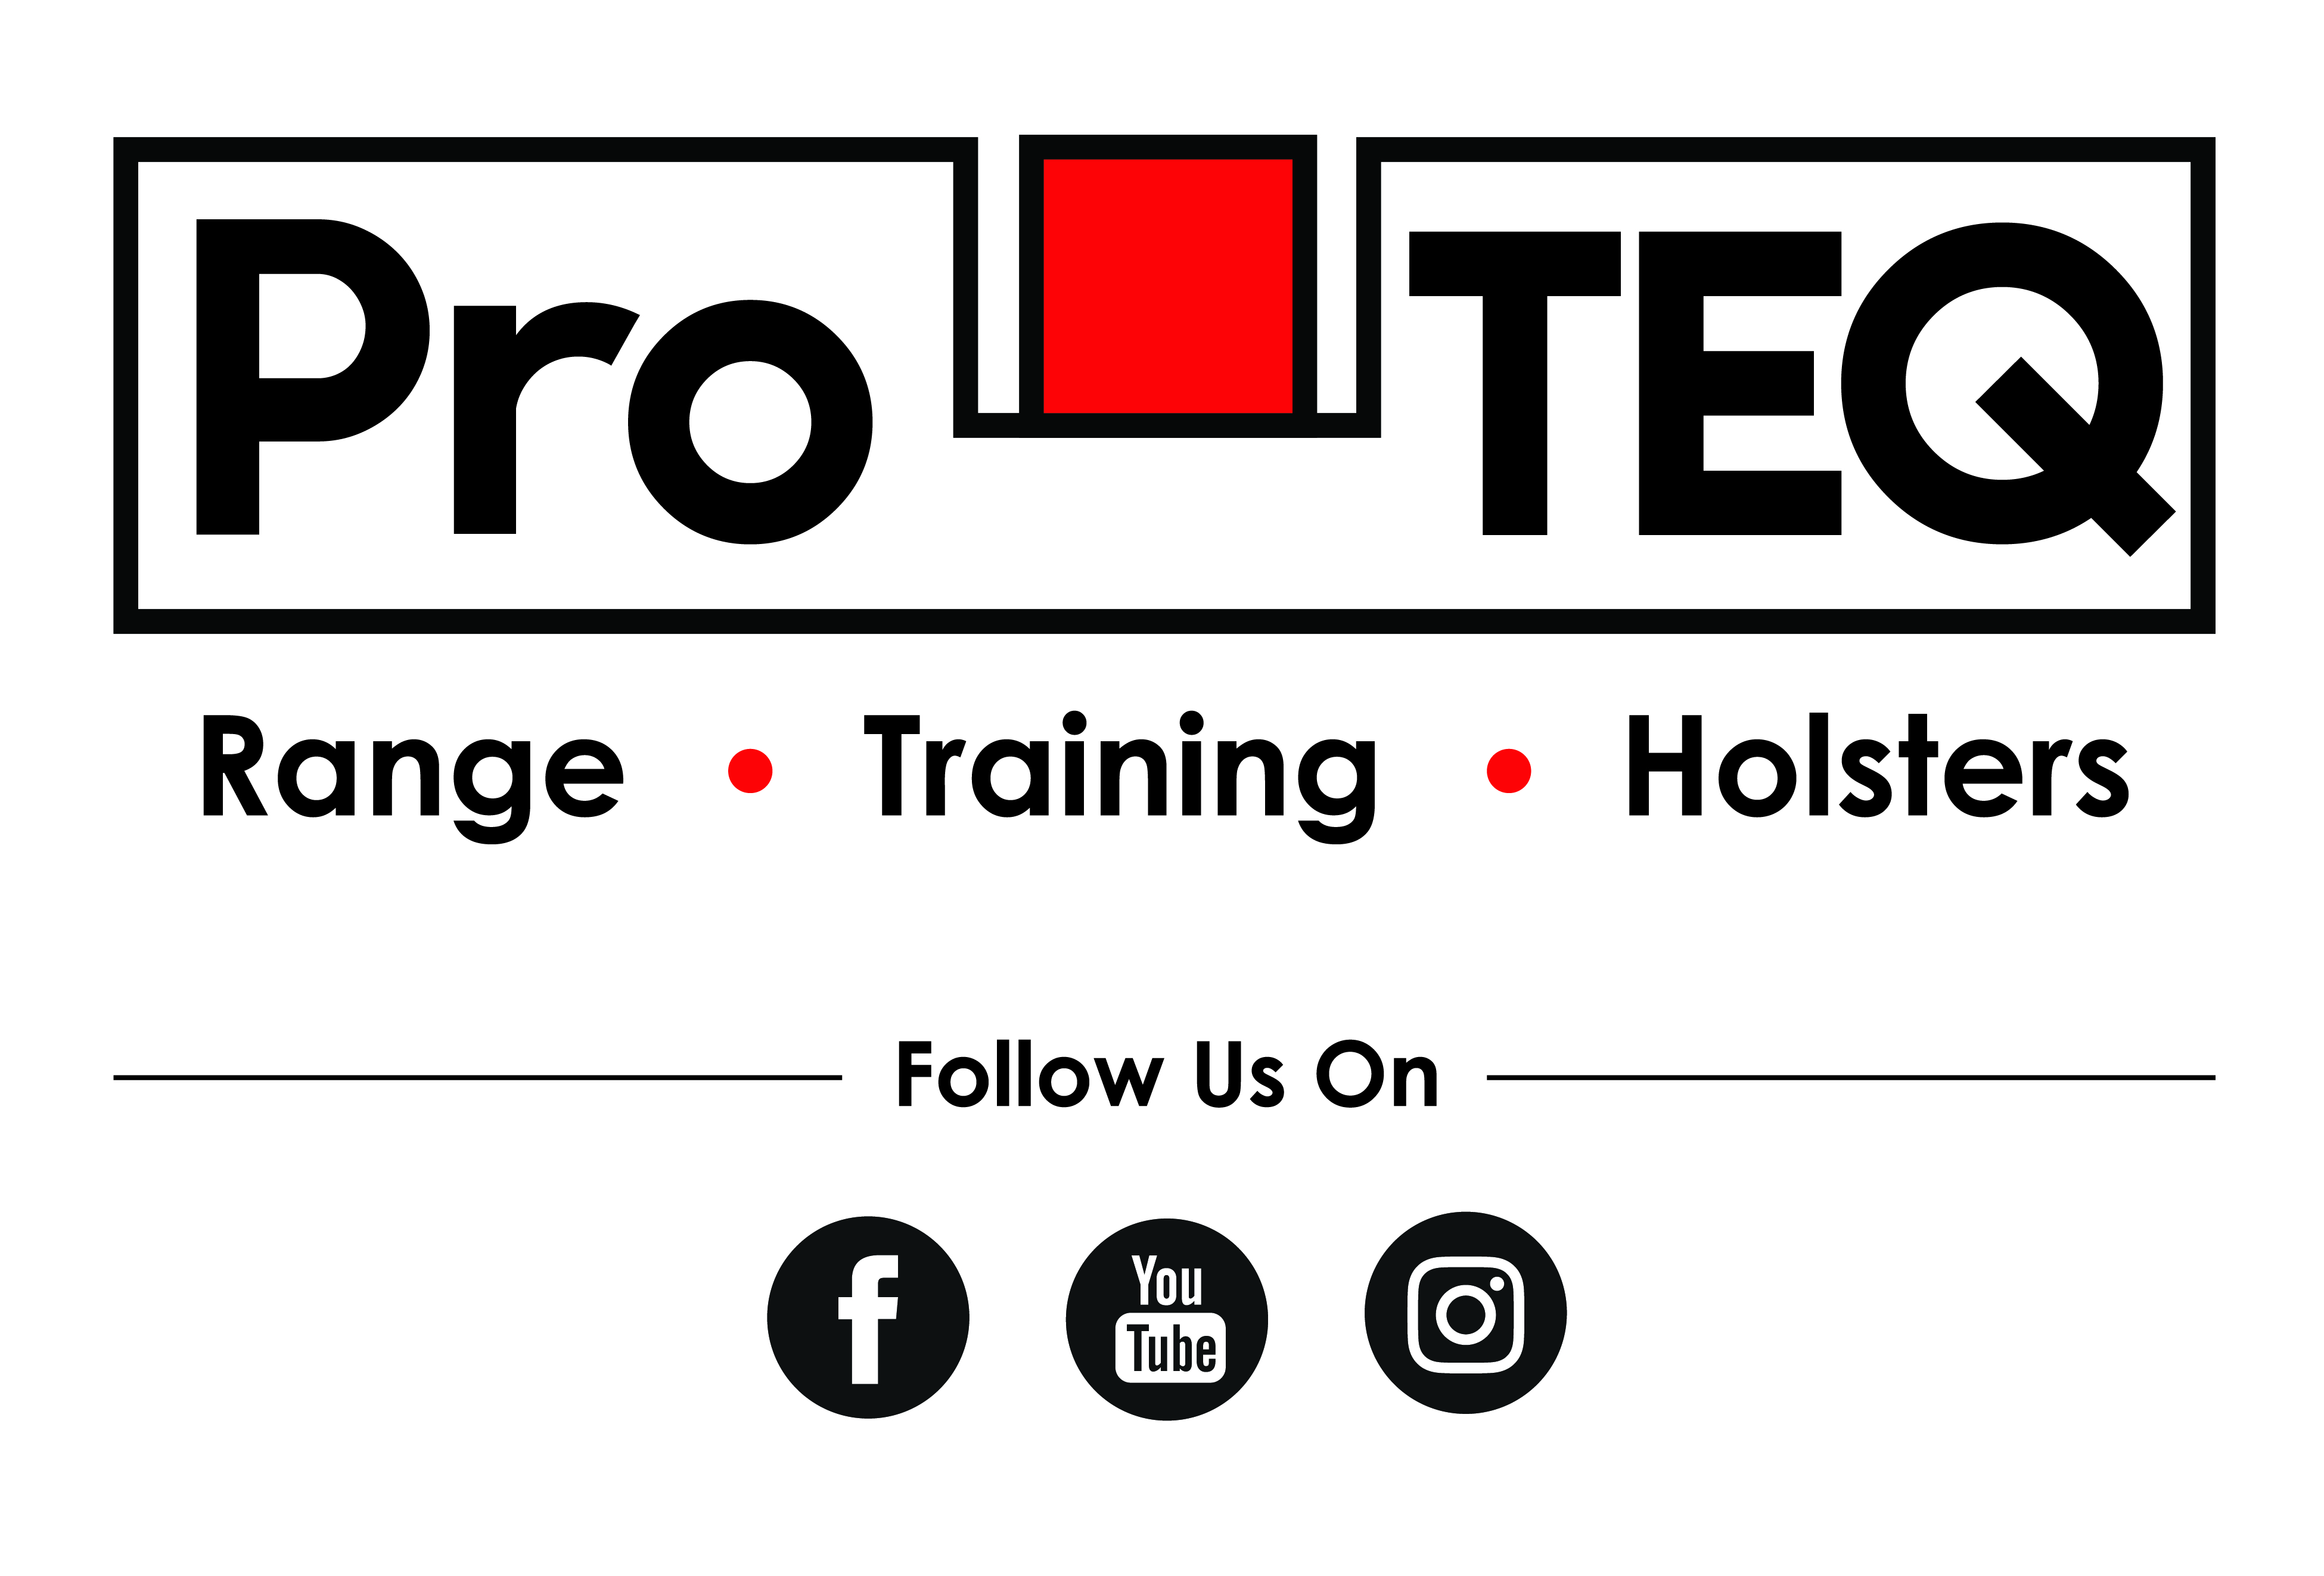 ProTEQ Custom Gear, LLC